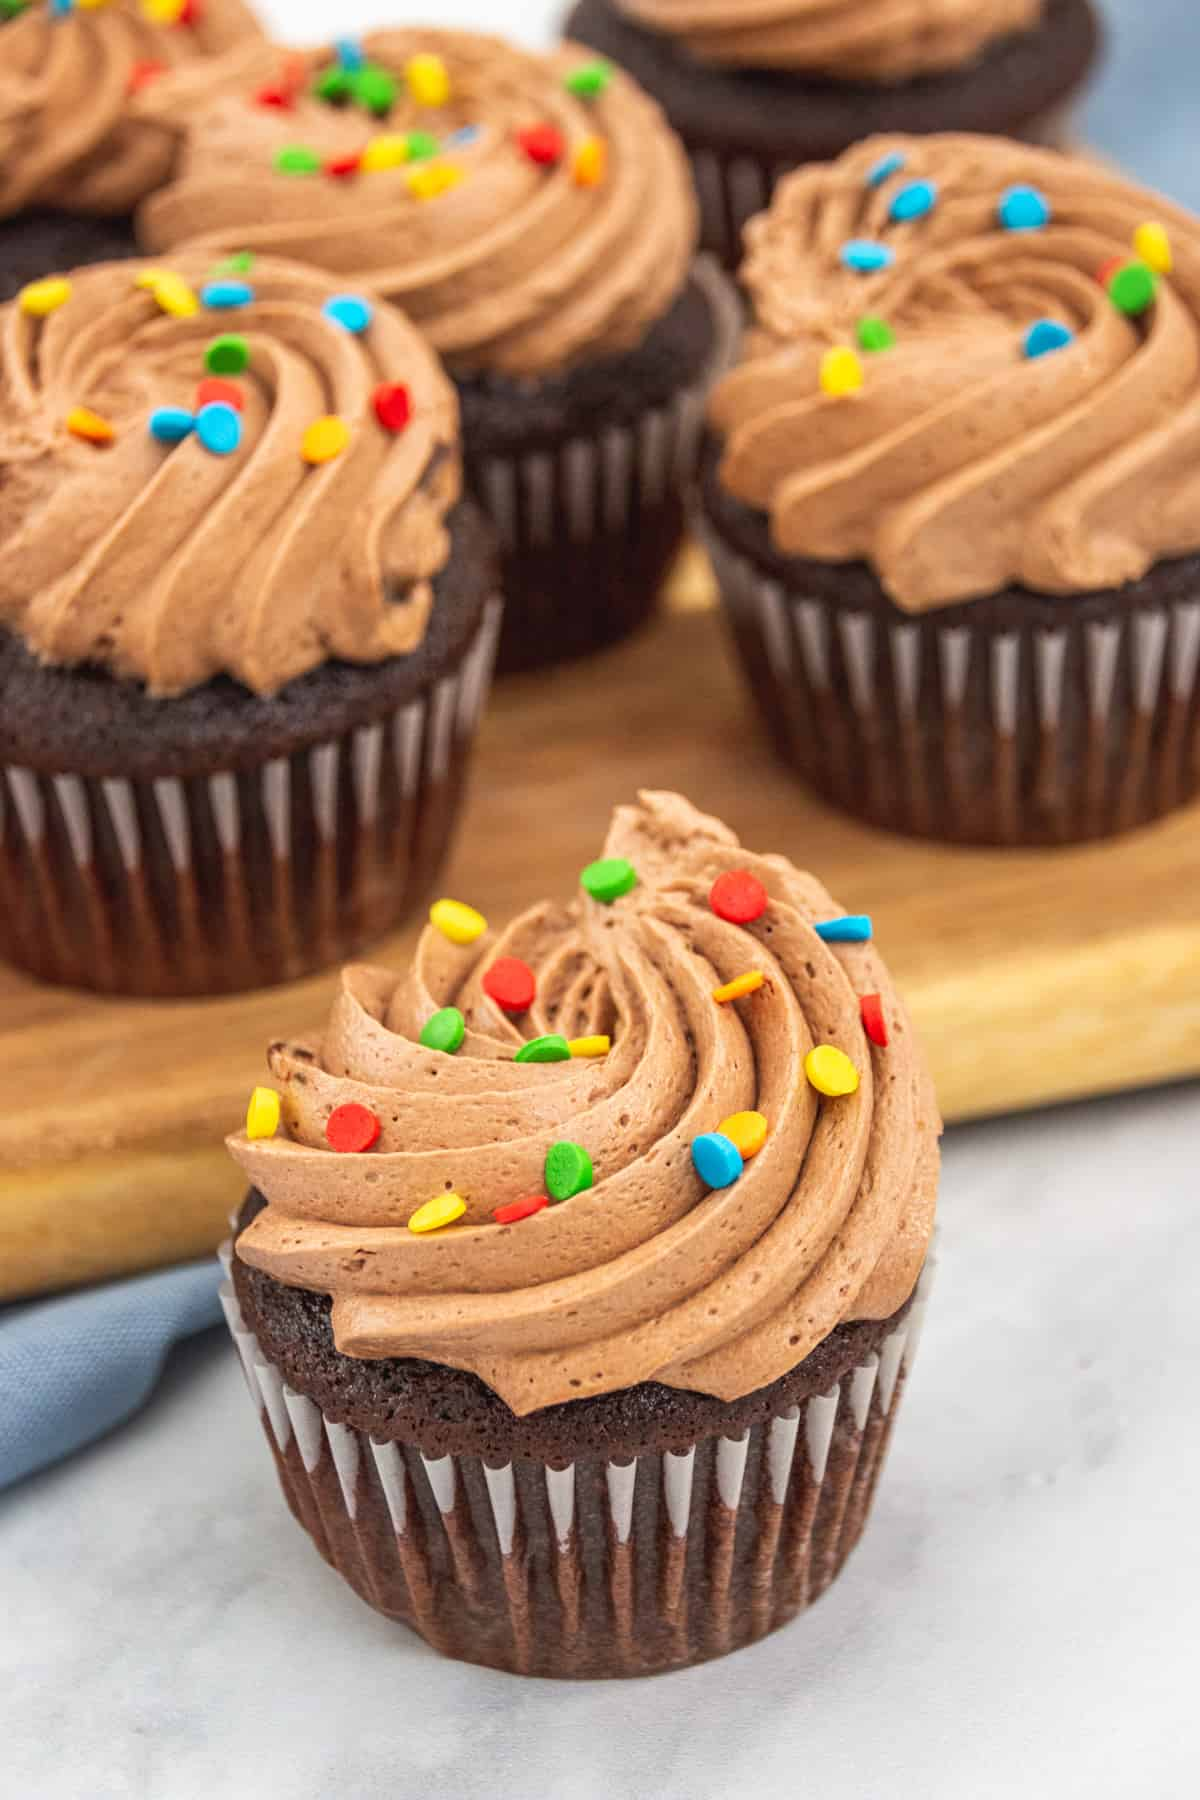 chocolate cupcakes on a wooden board with sprinkles and icing